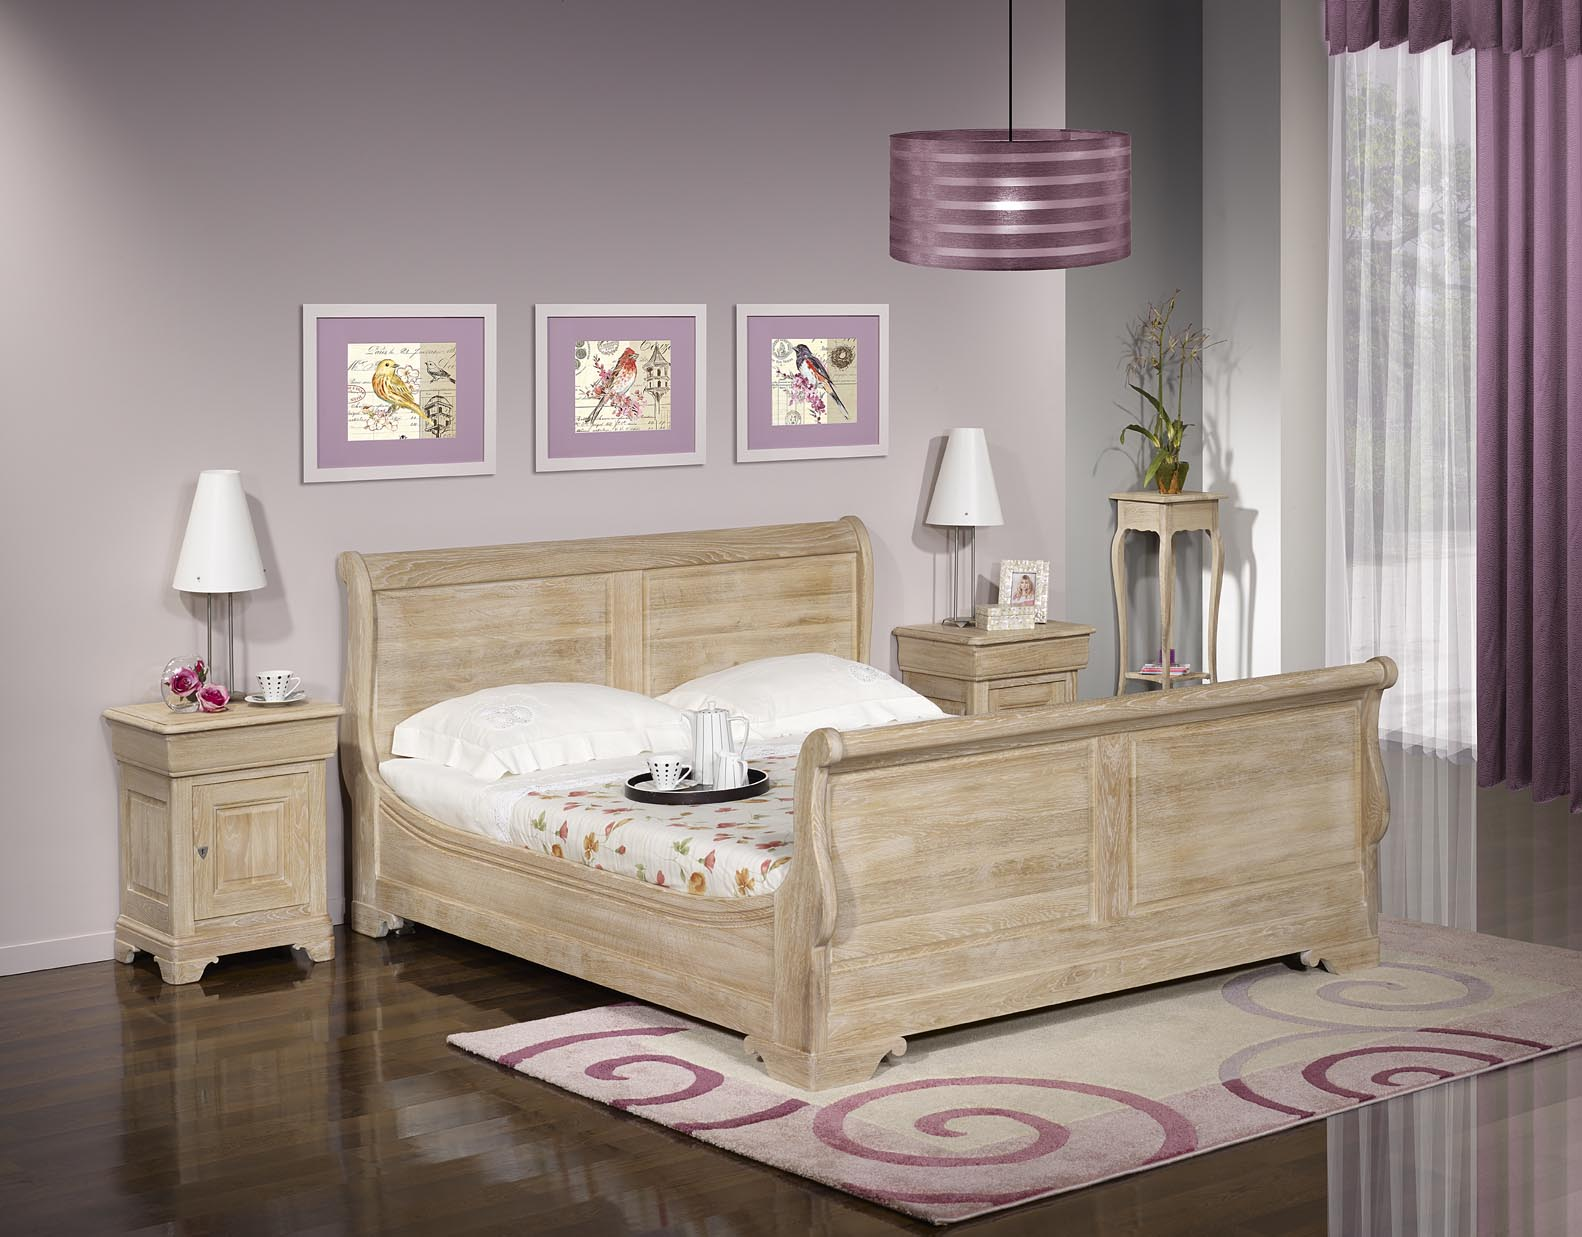 lit bateau en ch ne massif 140 190 de style louis philippe. Black Bedroom Furniture Sets. Home Design Ideas